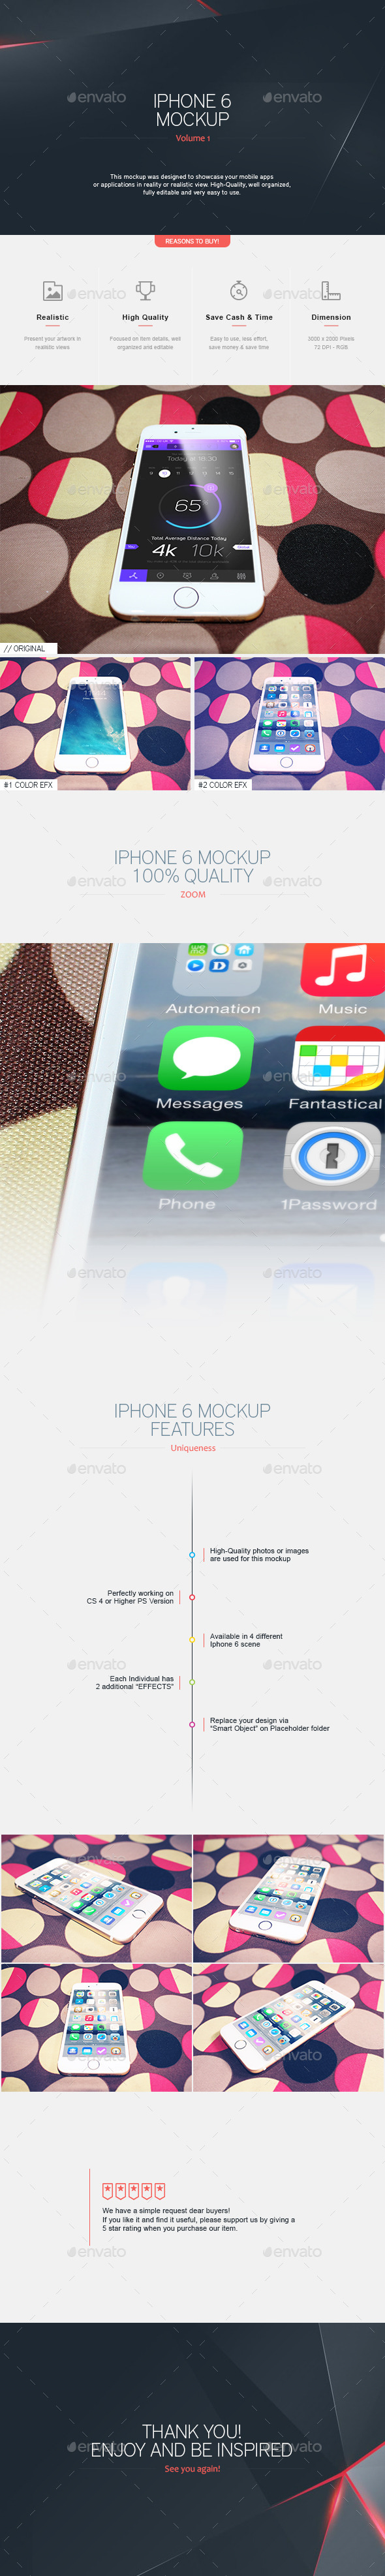 Iphone 6 Mockup V.1 - Mobile Displays